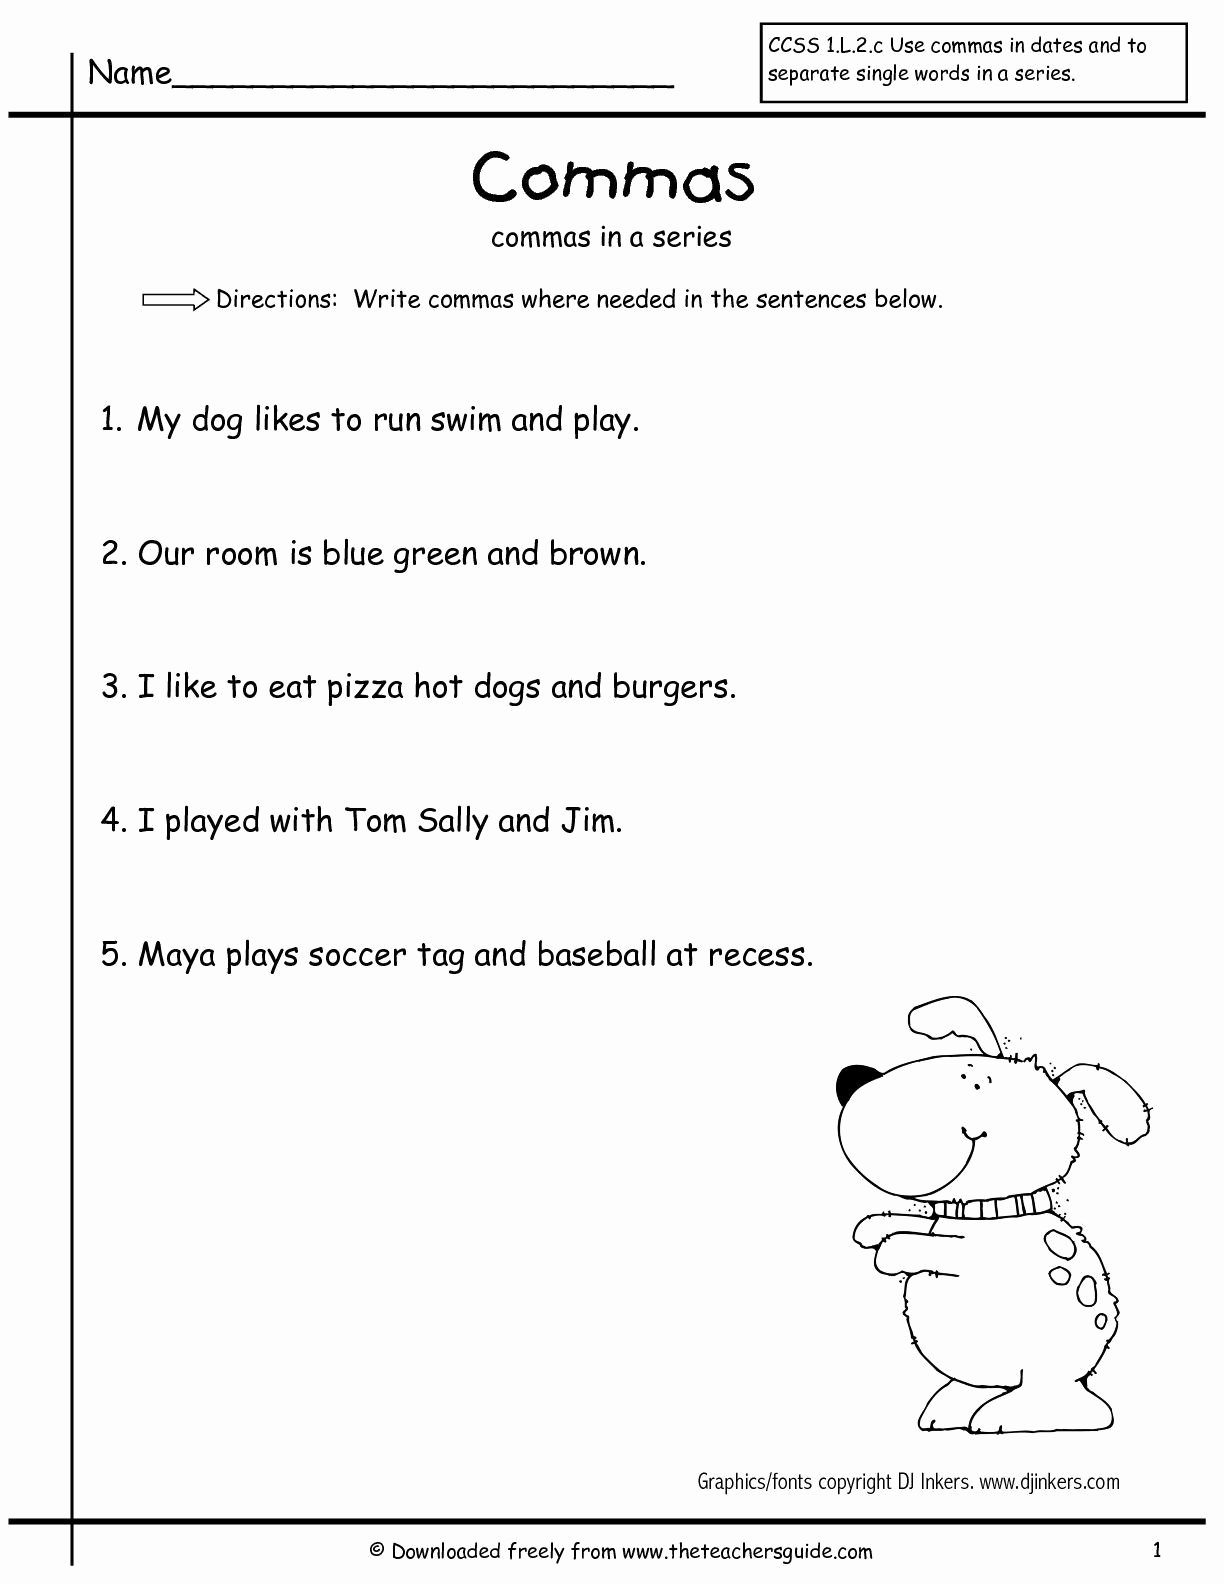 Commas Worksheet 4th Grade Elegant 20 Mas Worksheet 4th Grade